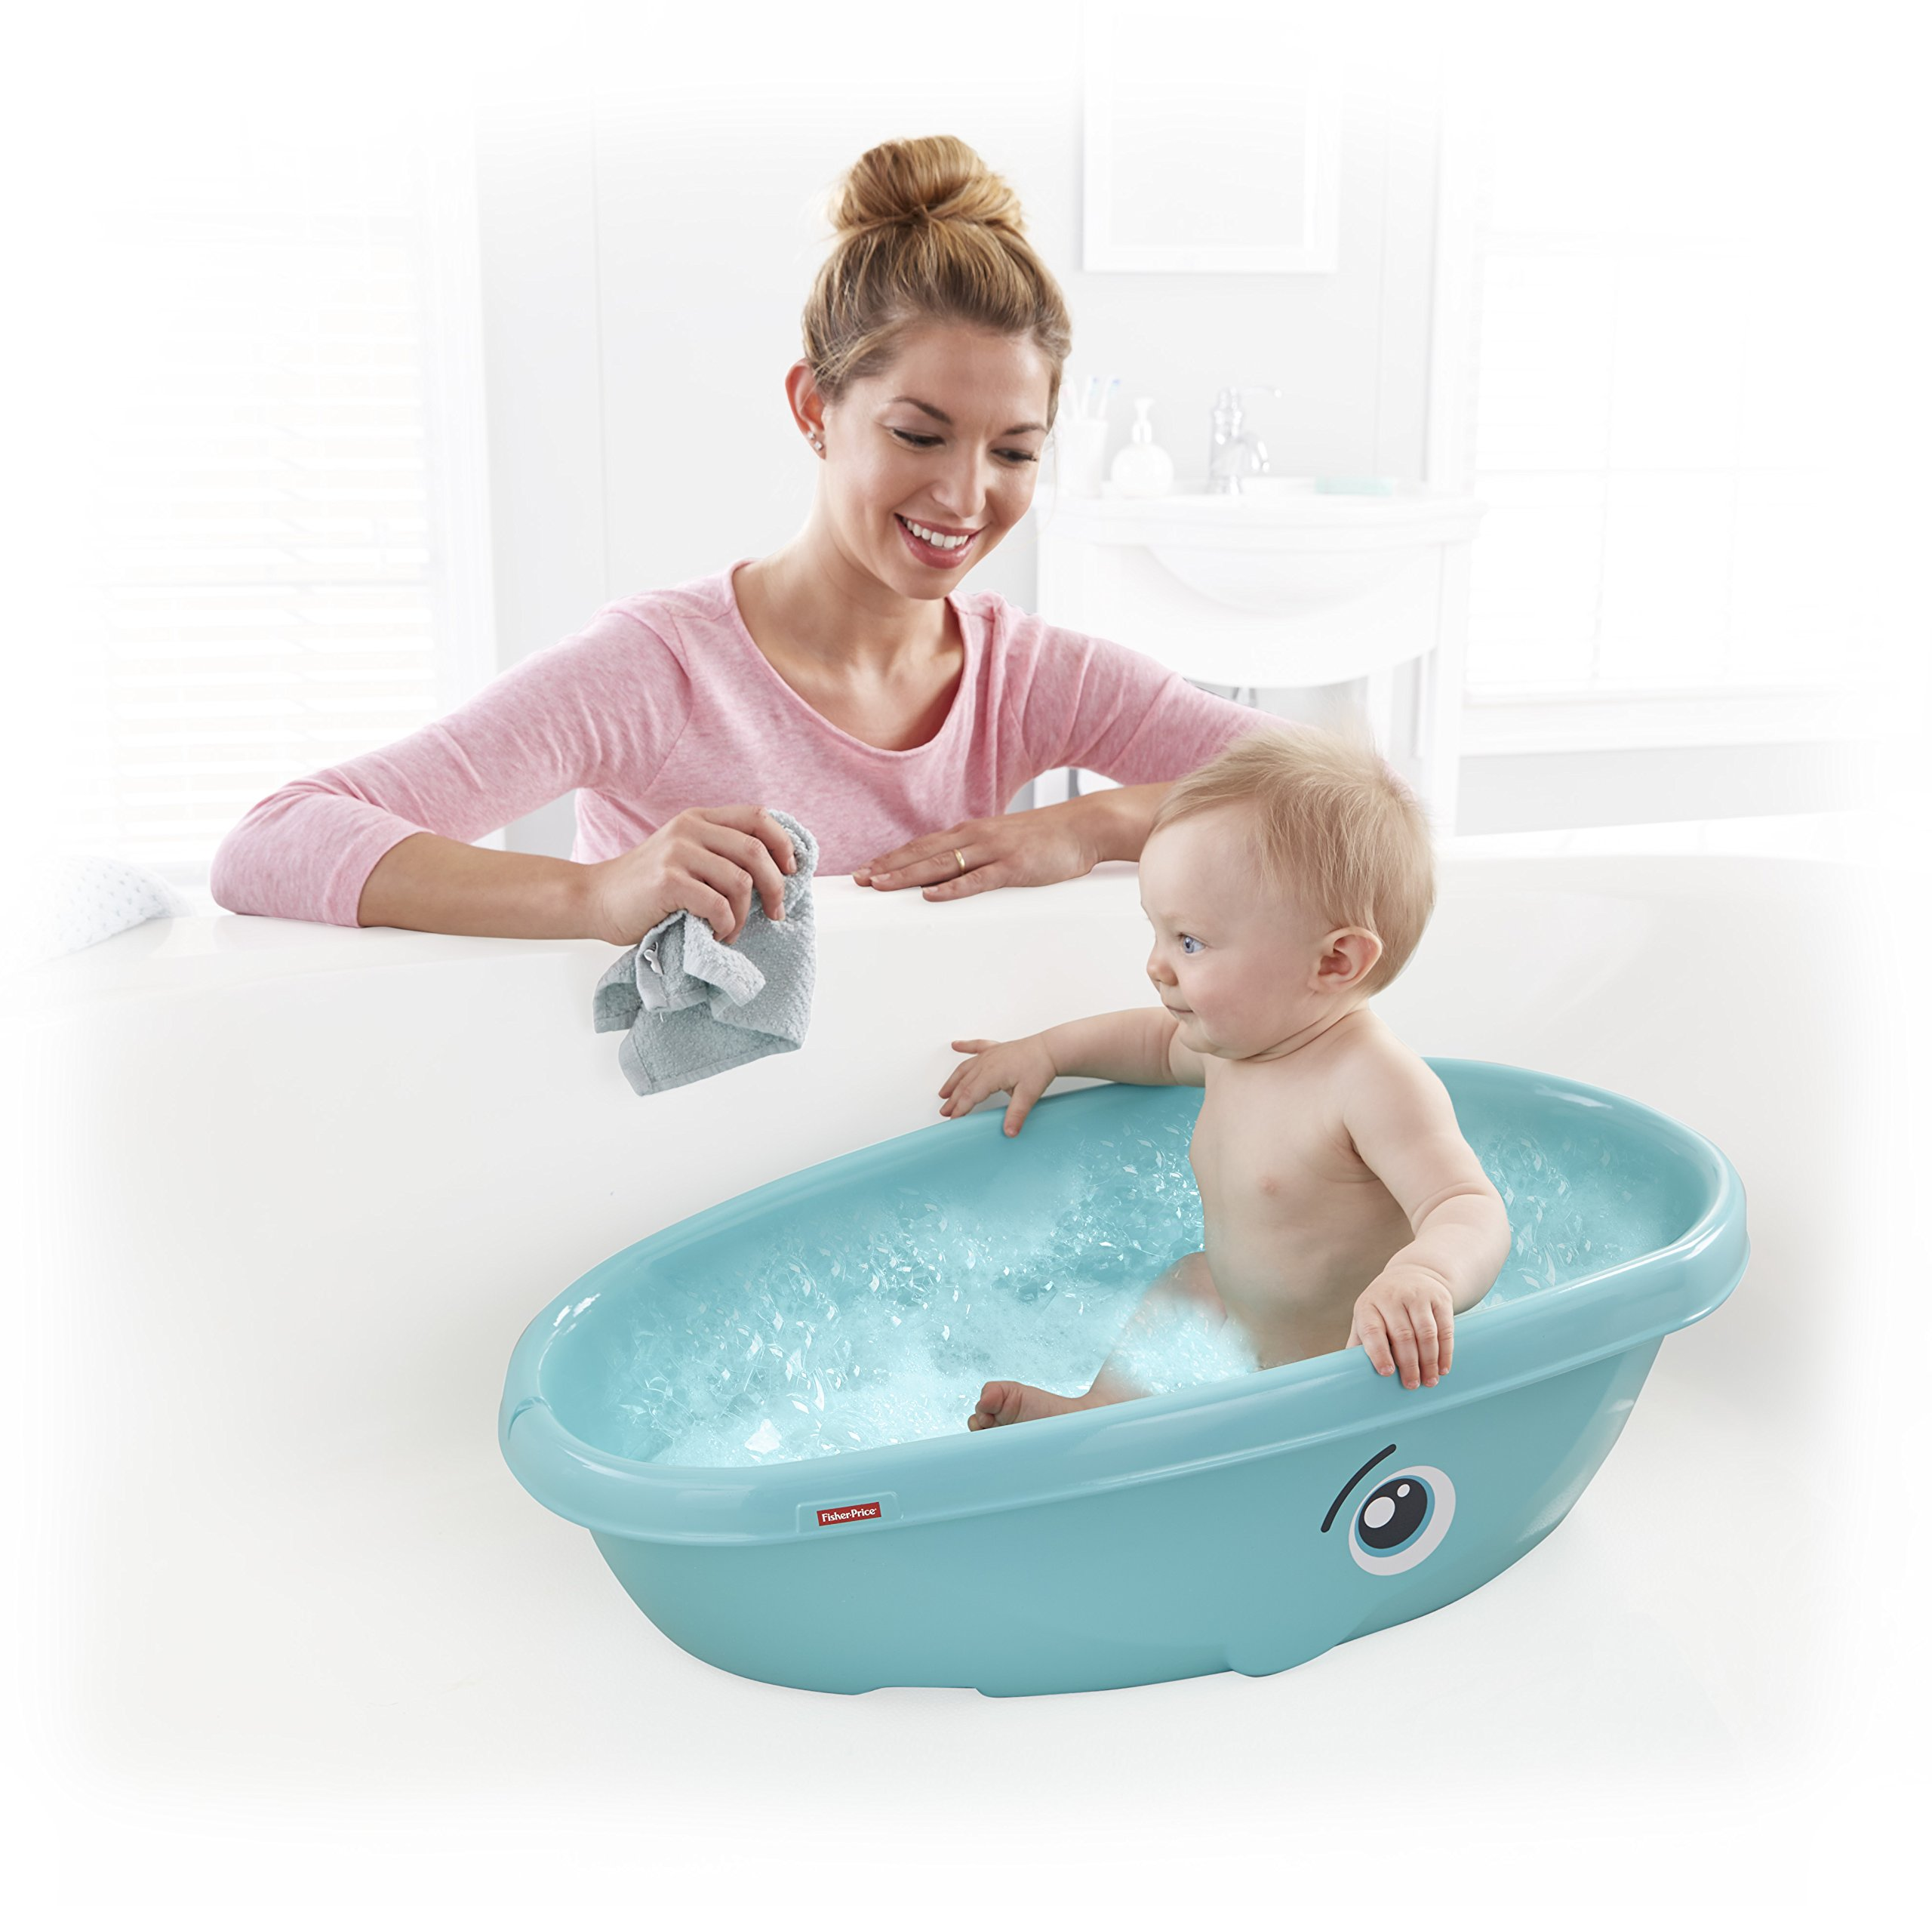 Fisher-Price Top Quality Bath Tub BEST Baby Seat Shower